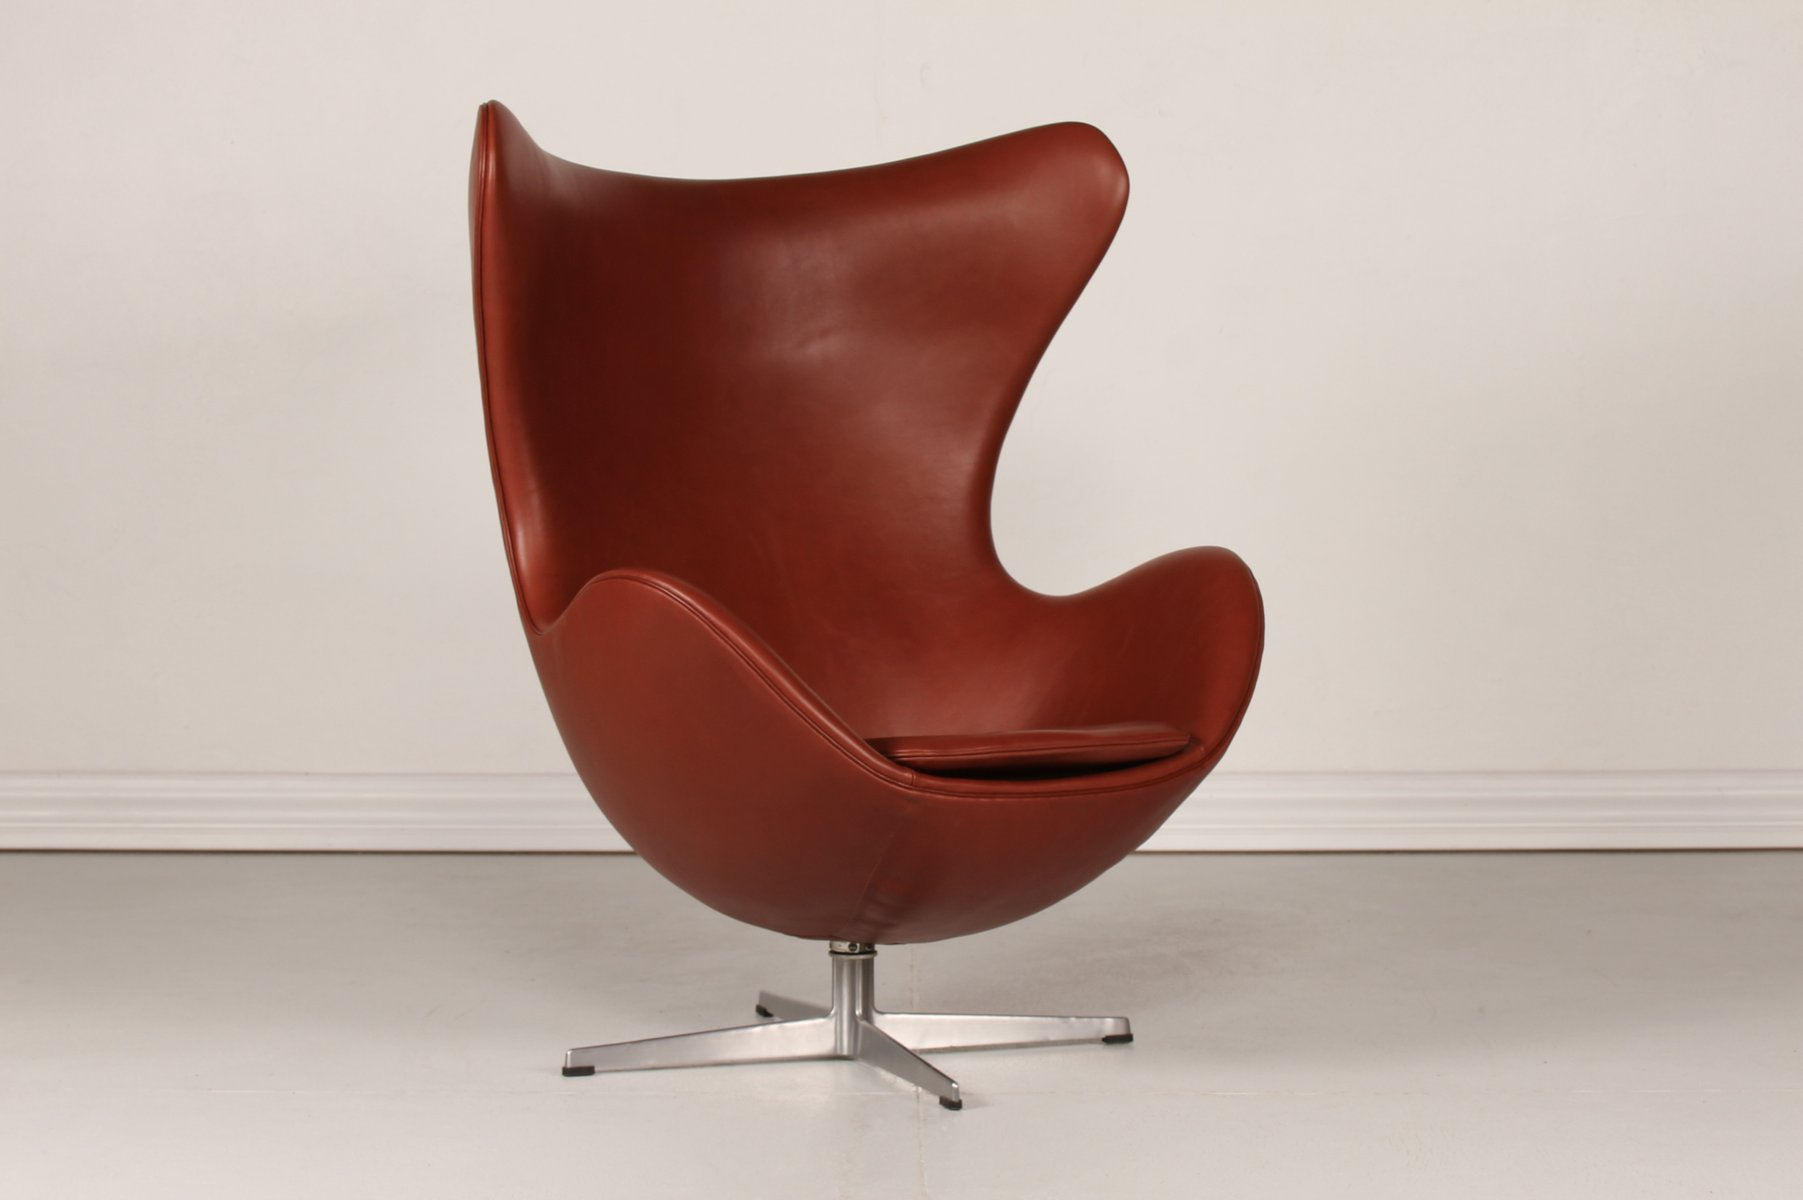 ... 3316 Cognac Leather Egg Chair By Arne Jacobsen For Fritz Hansen ...